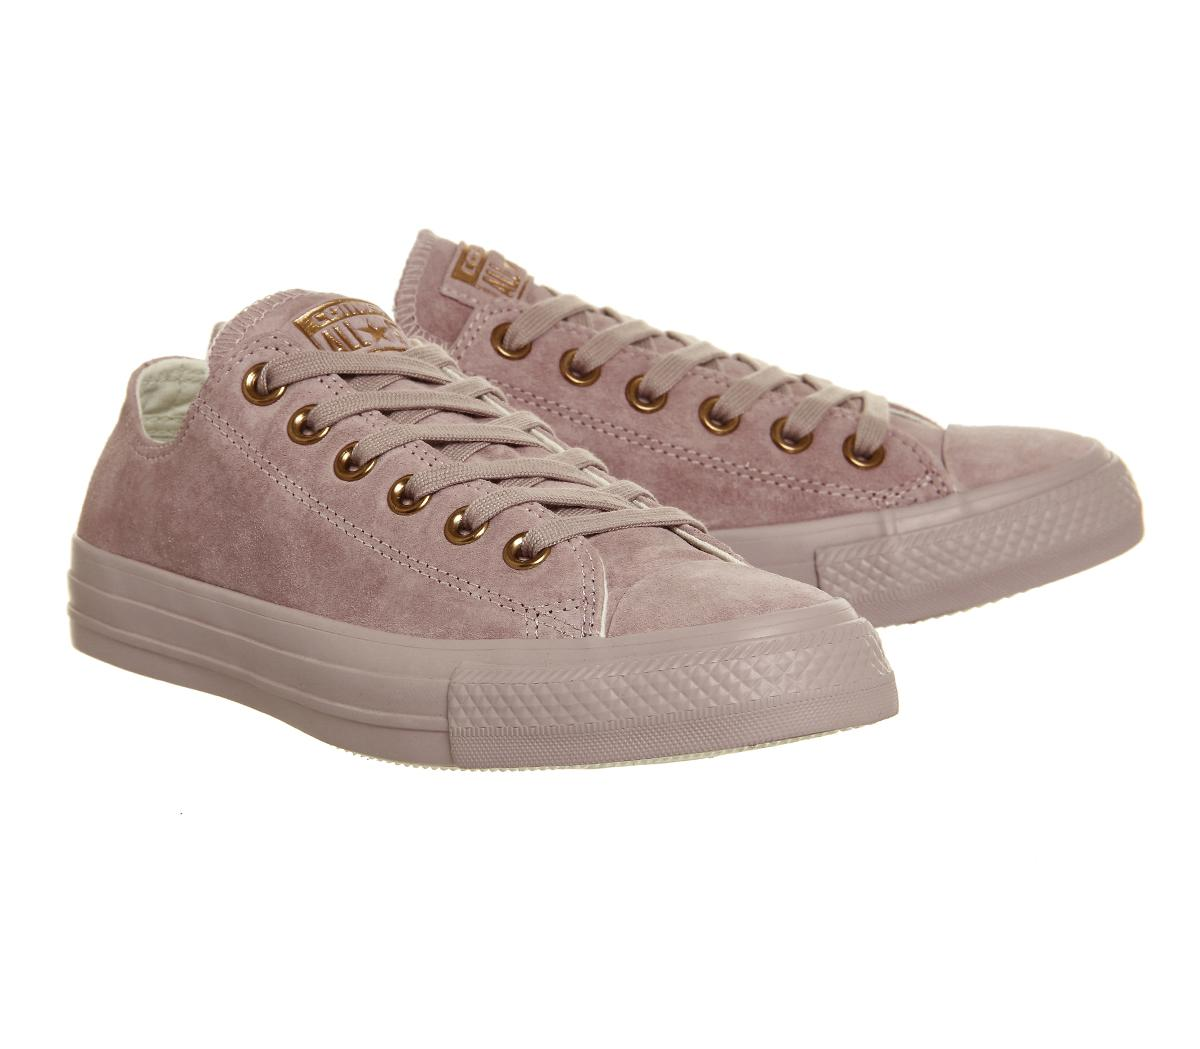 14f0d45754f5d Lyst - Converse All Star Low Leather in Pink